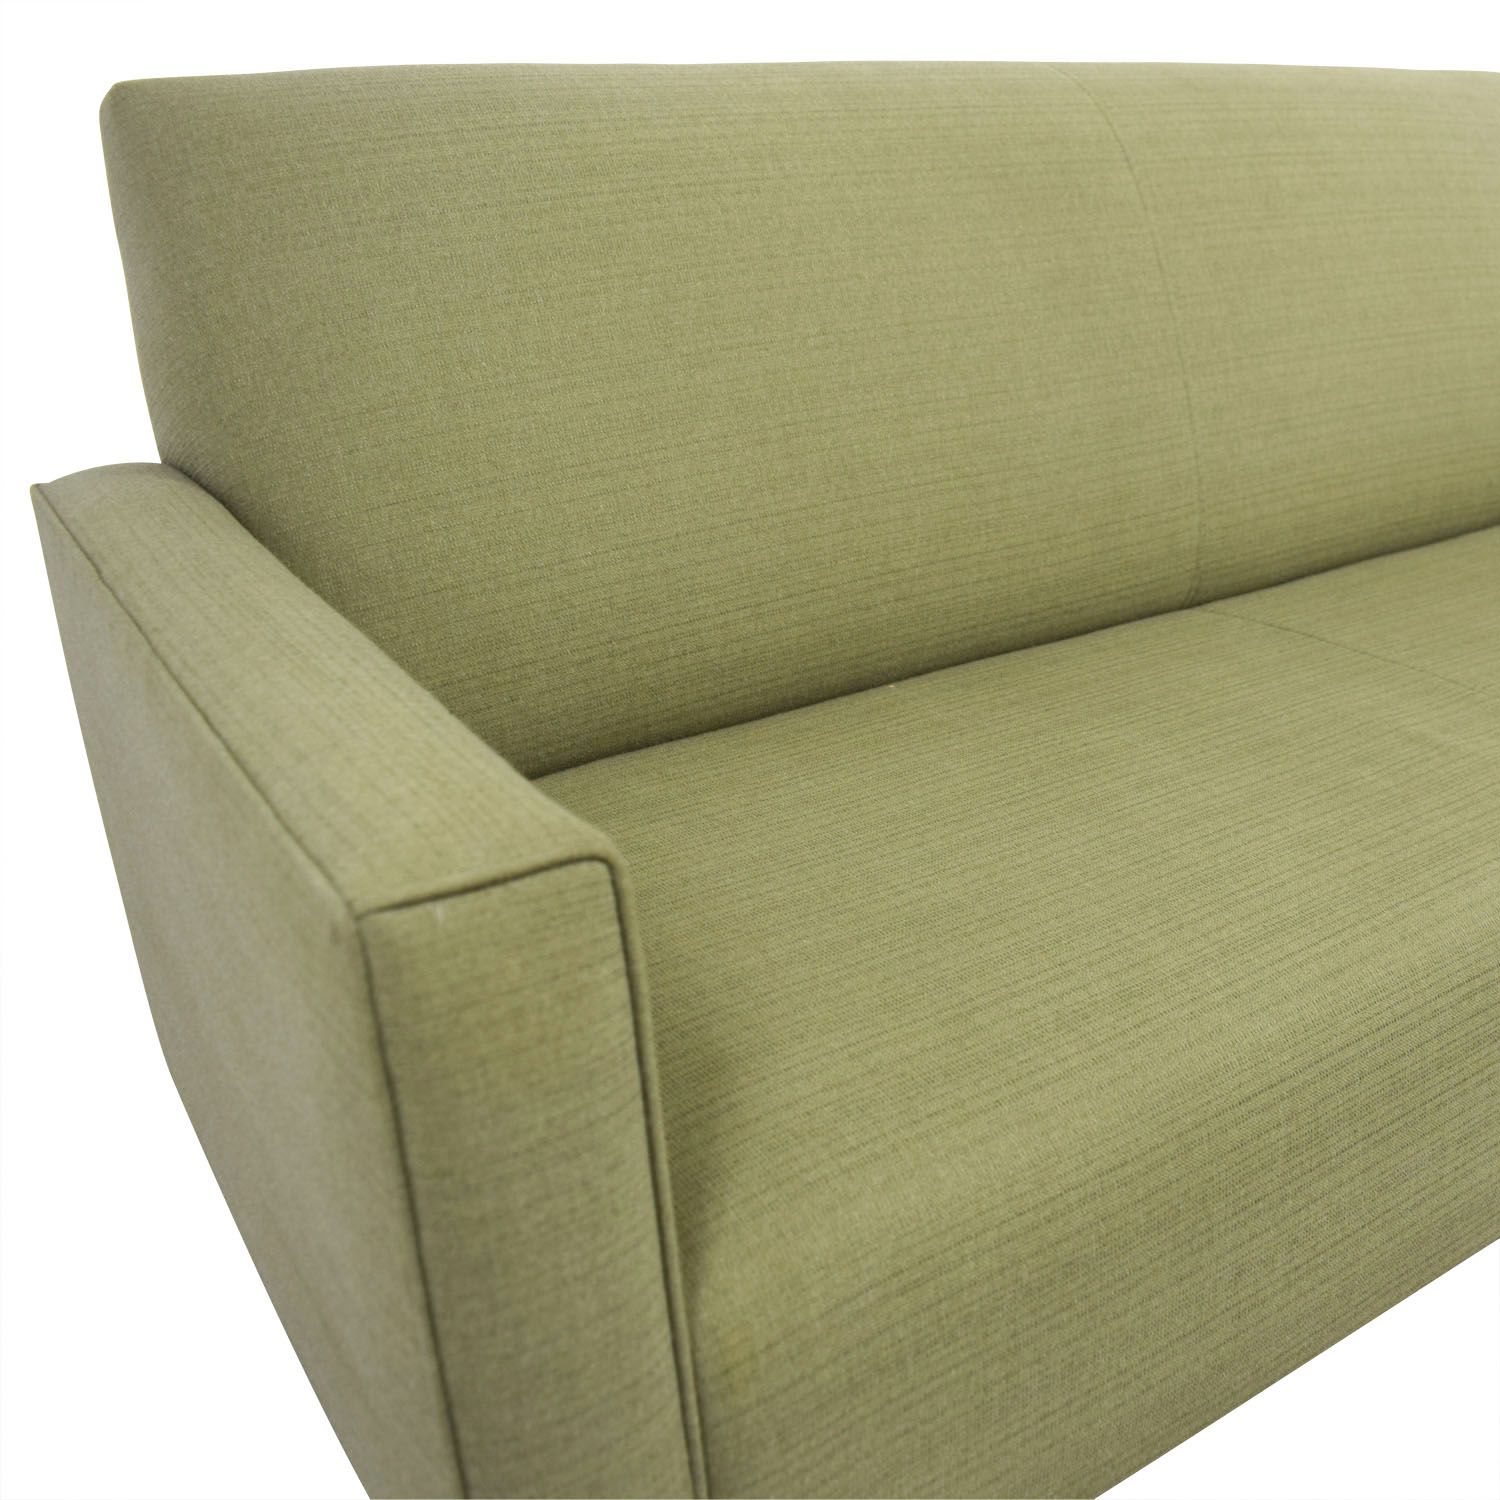 crate and barrel chair cushions ergonomic wiki 80 off moss green single